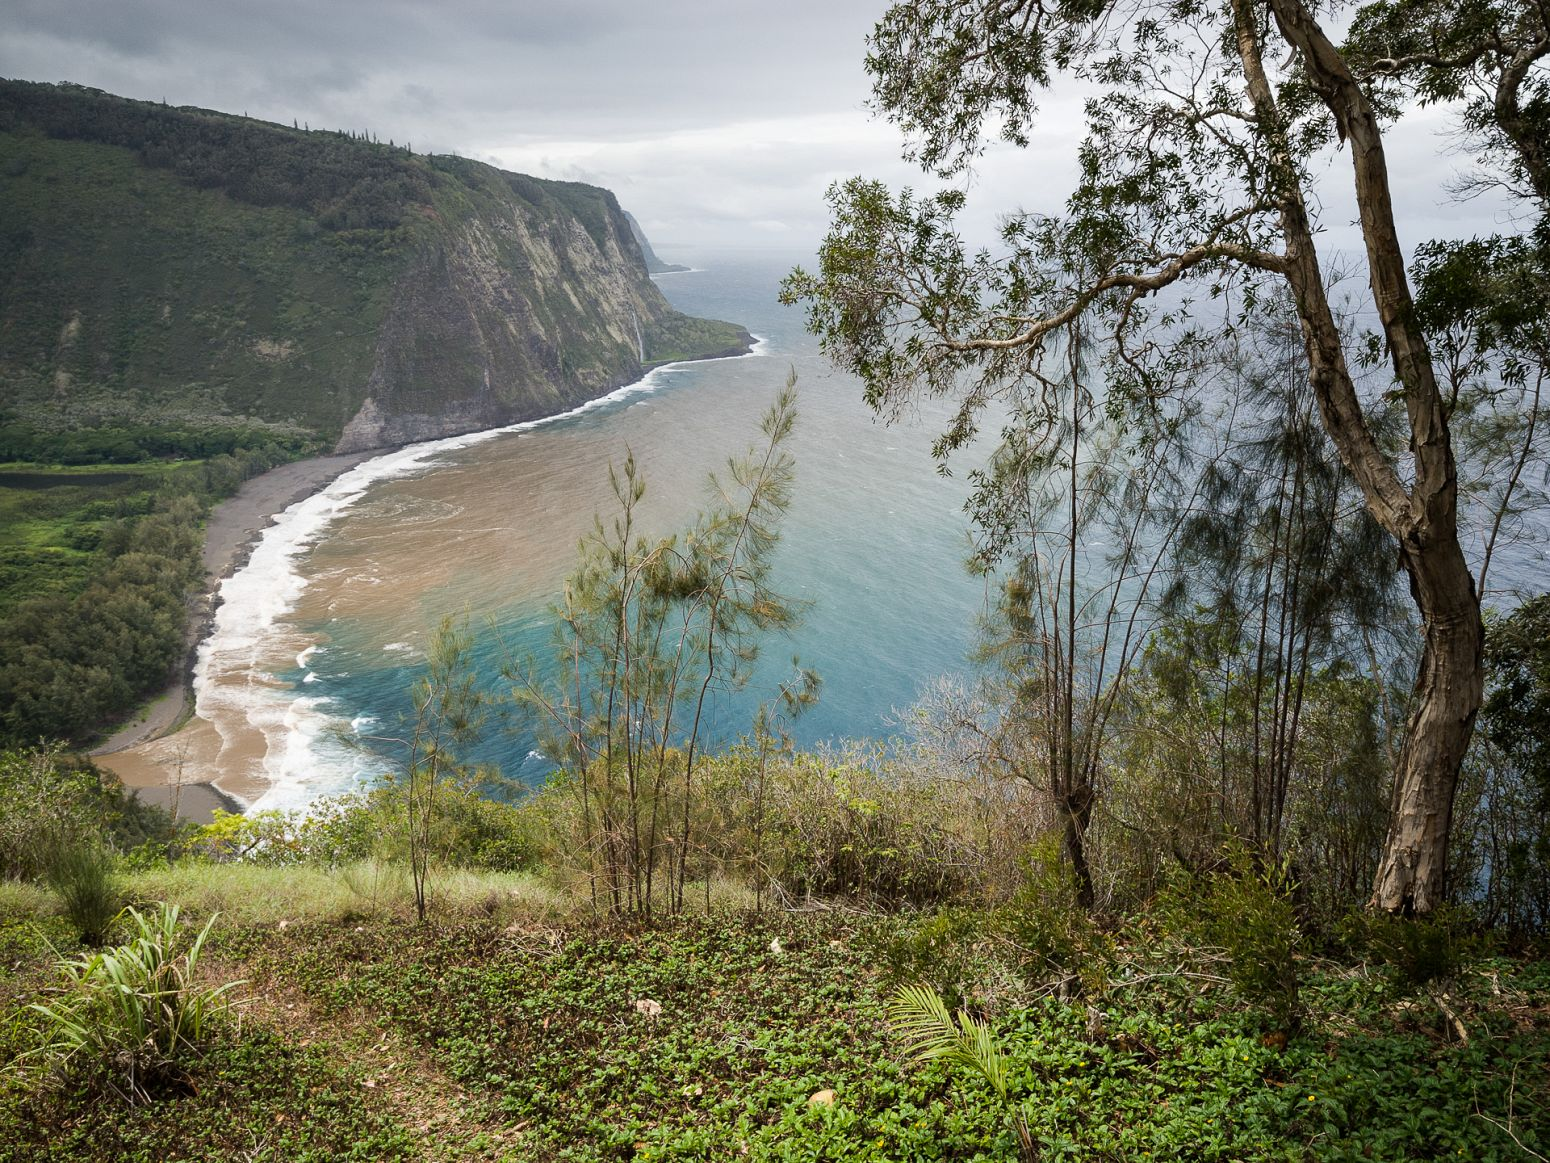 Waipio Valley Lookout, Hawaii, USA